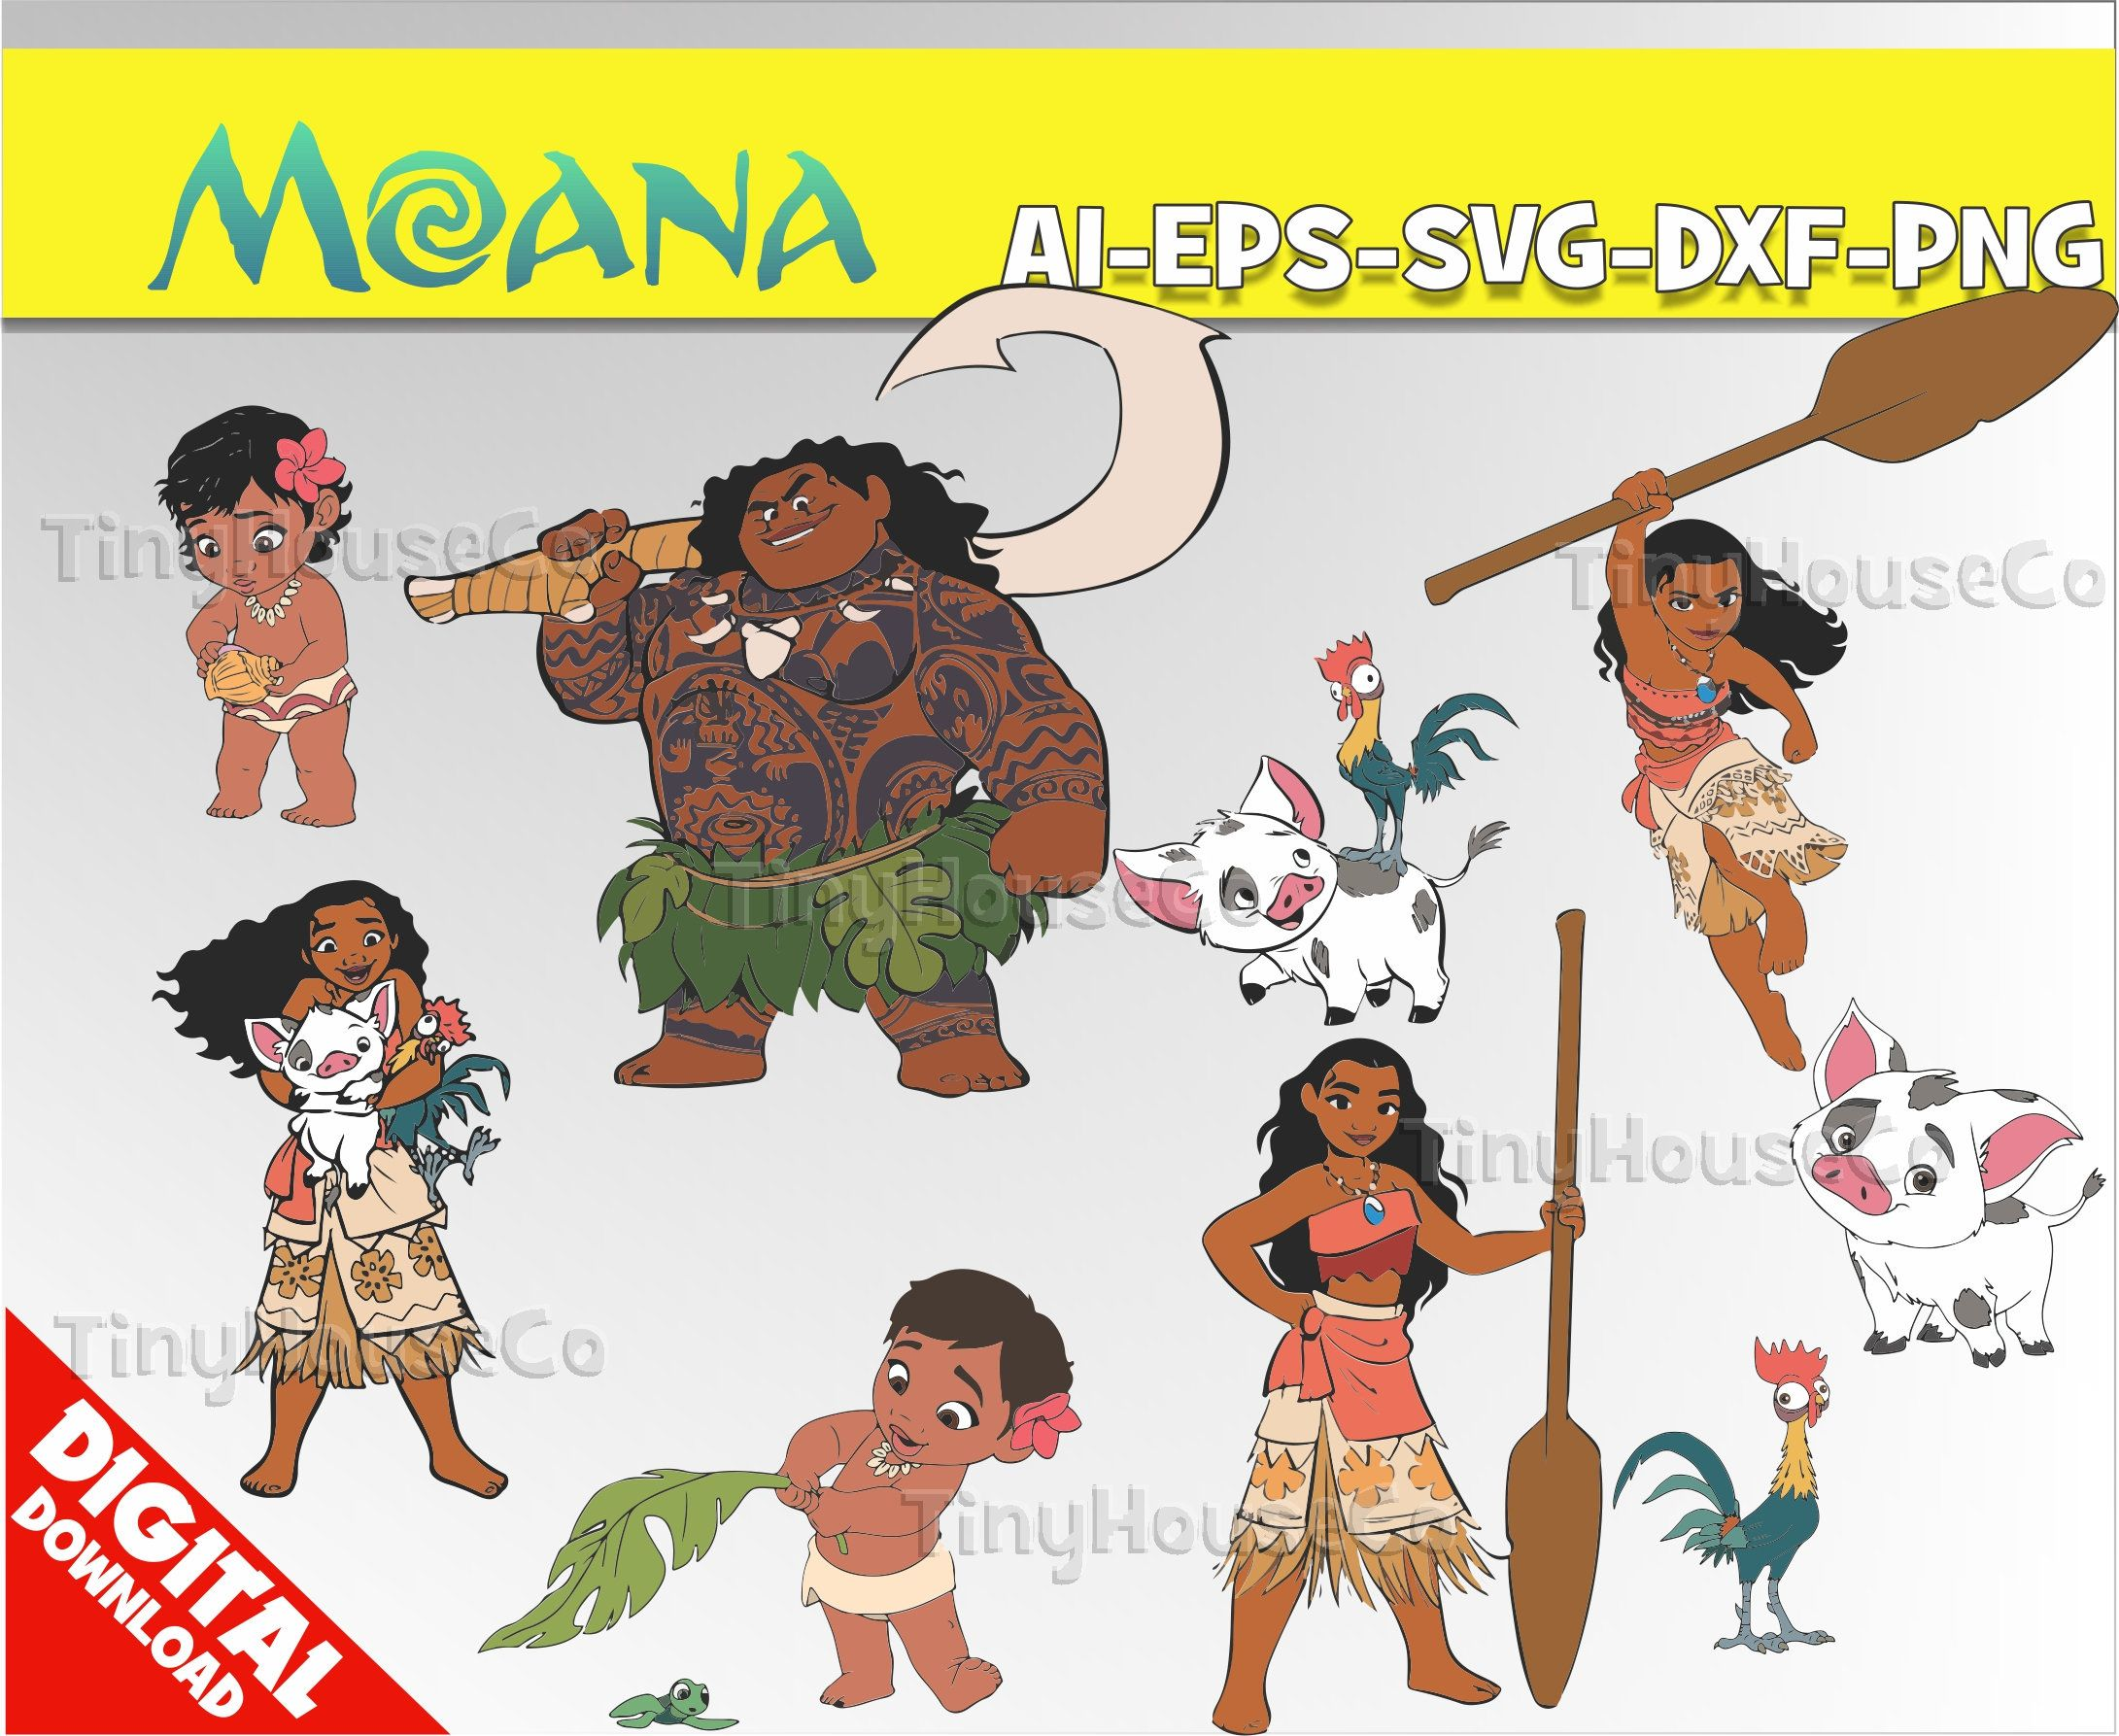 Moana Svg Moana Clipart Png Moana Party Moana Birthday Vector Printable Moana Digital Clipart Clip Art Https Etsy Me 2 Clip Art Digital Clip Art Print Decals